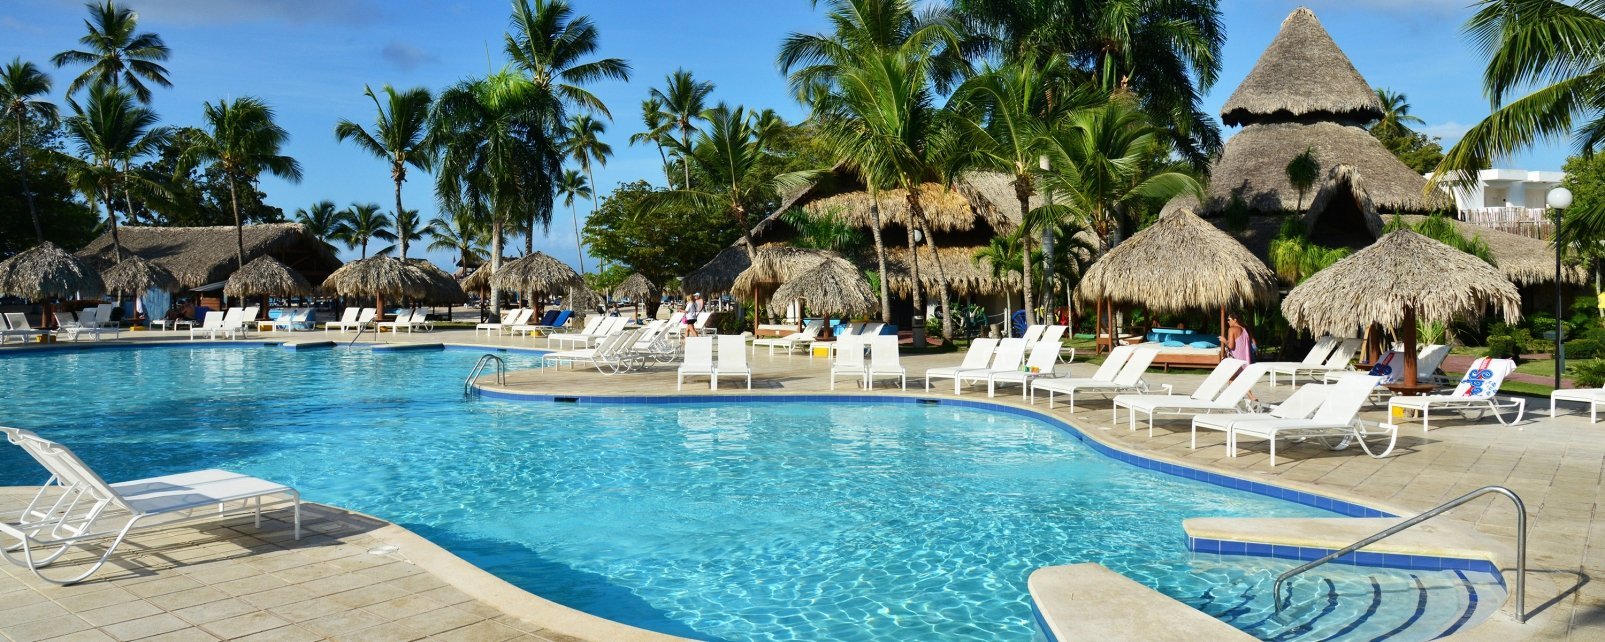 H tel be live collection canoa bayahibe r publique for Hotel collection hotels